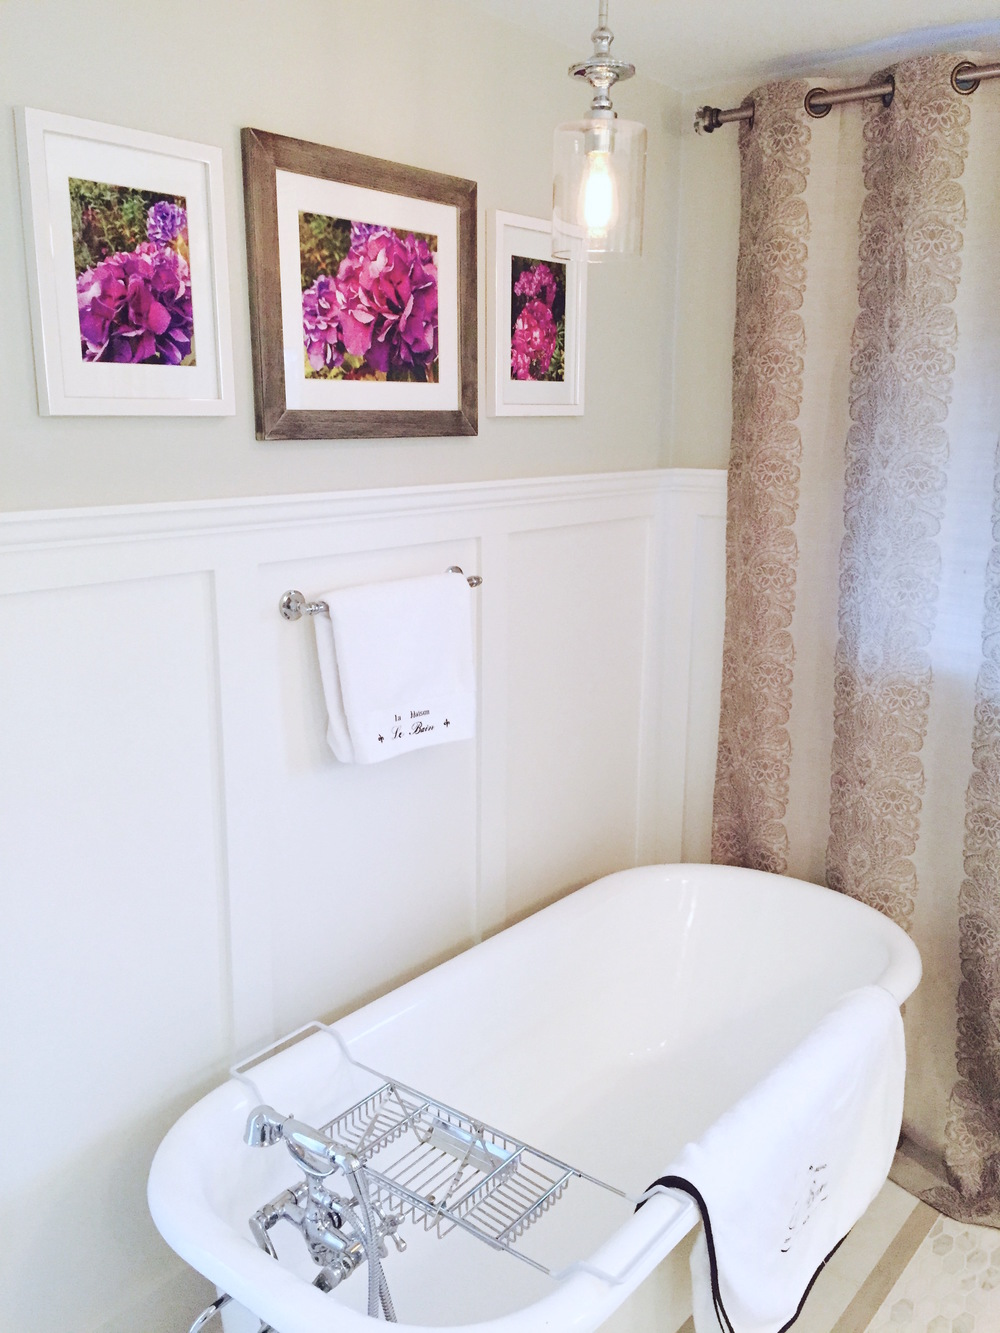 The existing clawfoot tub was refinished and a new faucet was installed to make this once neglected bath shine again.